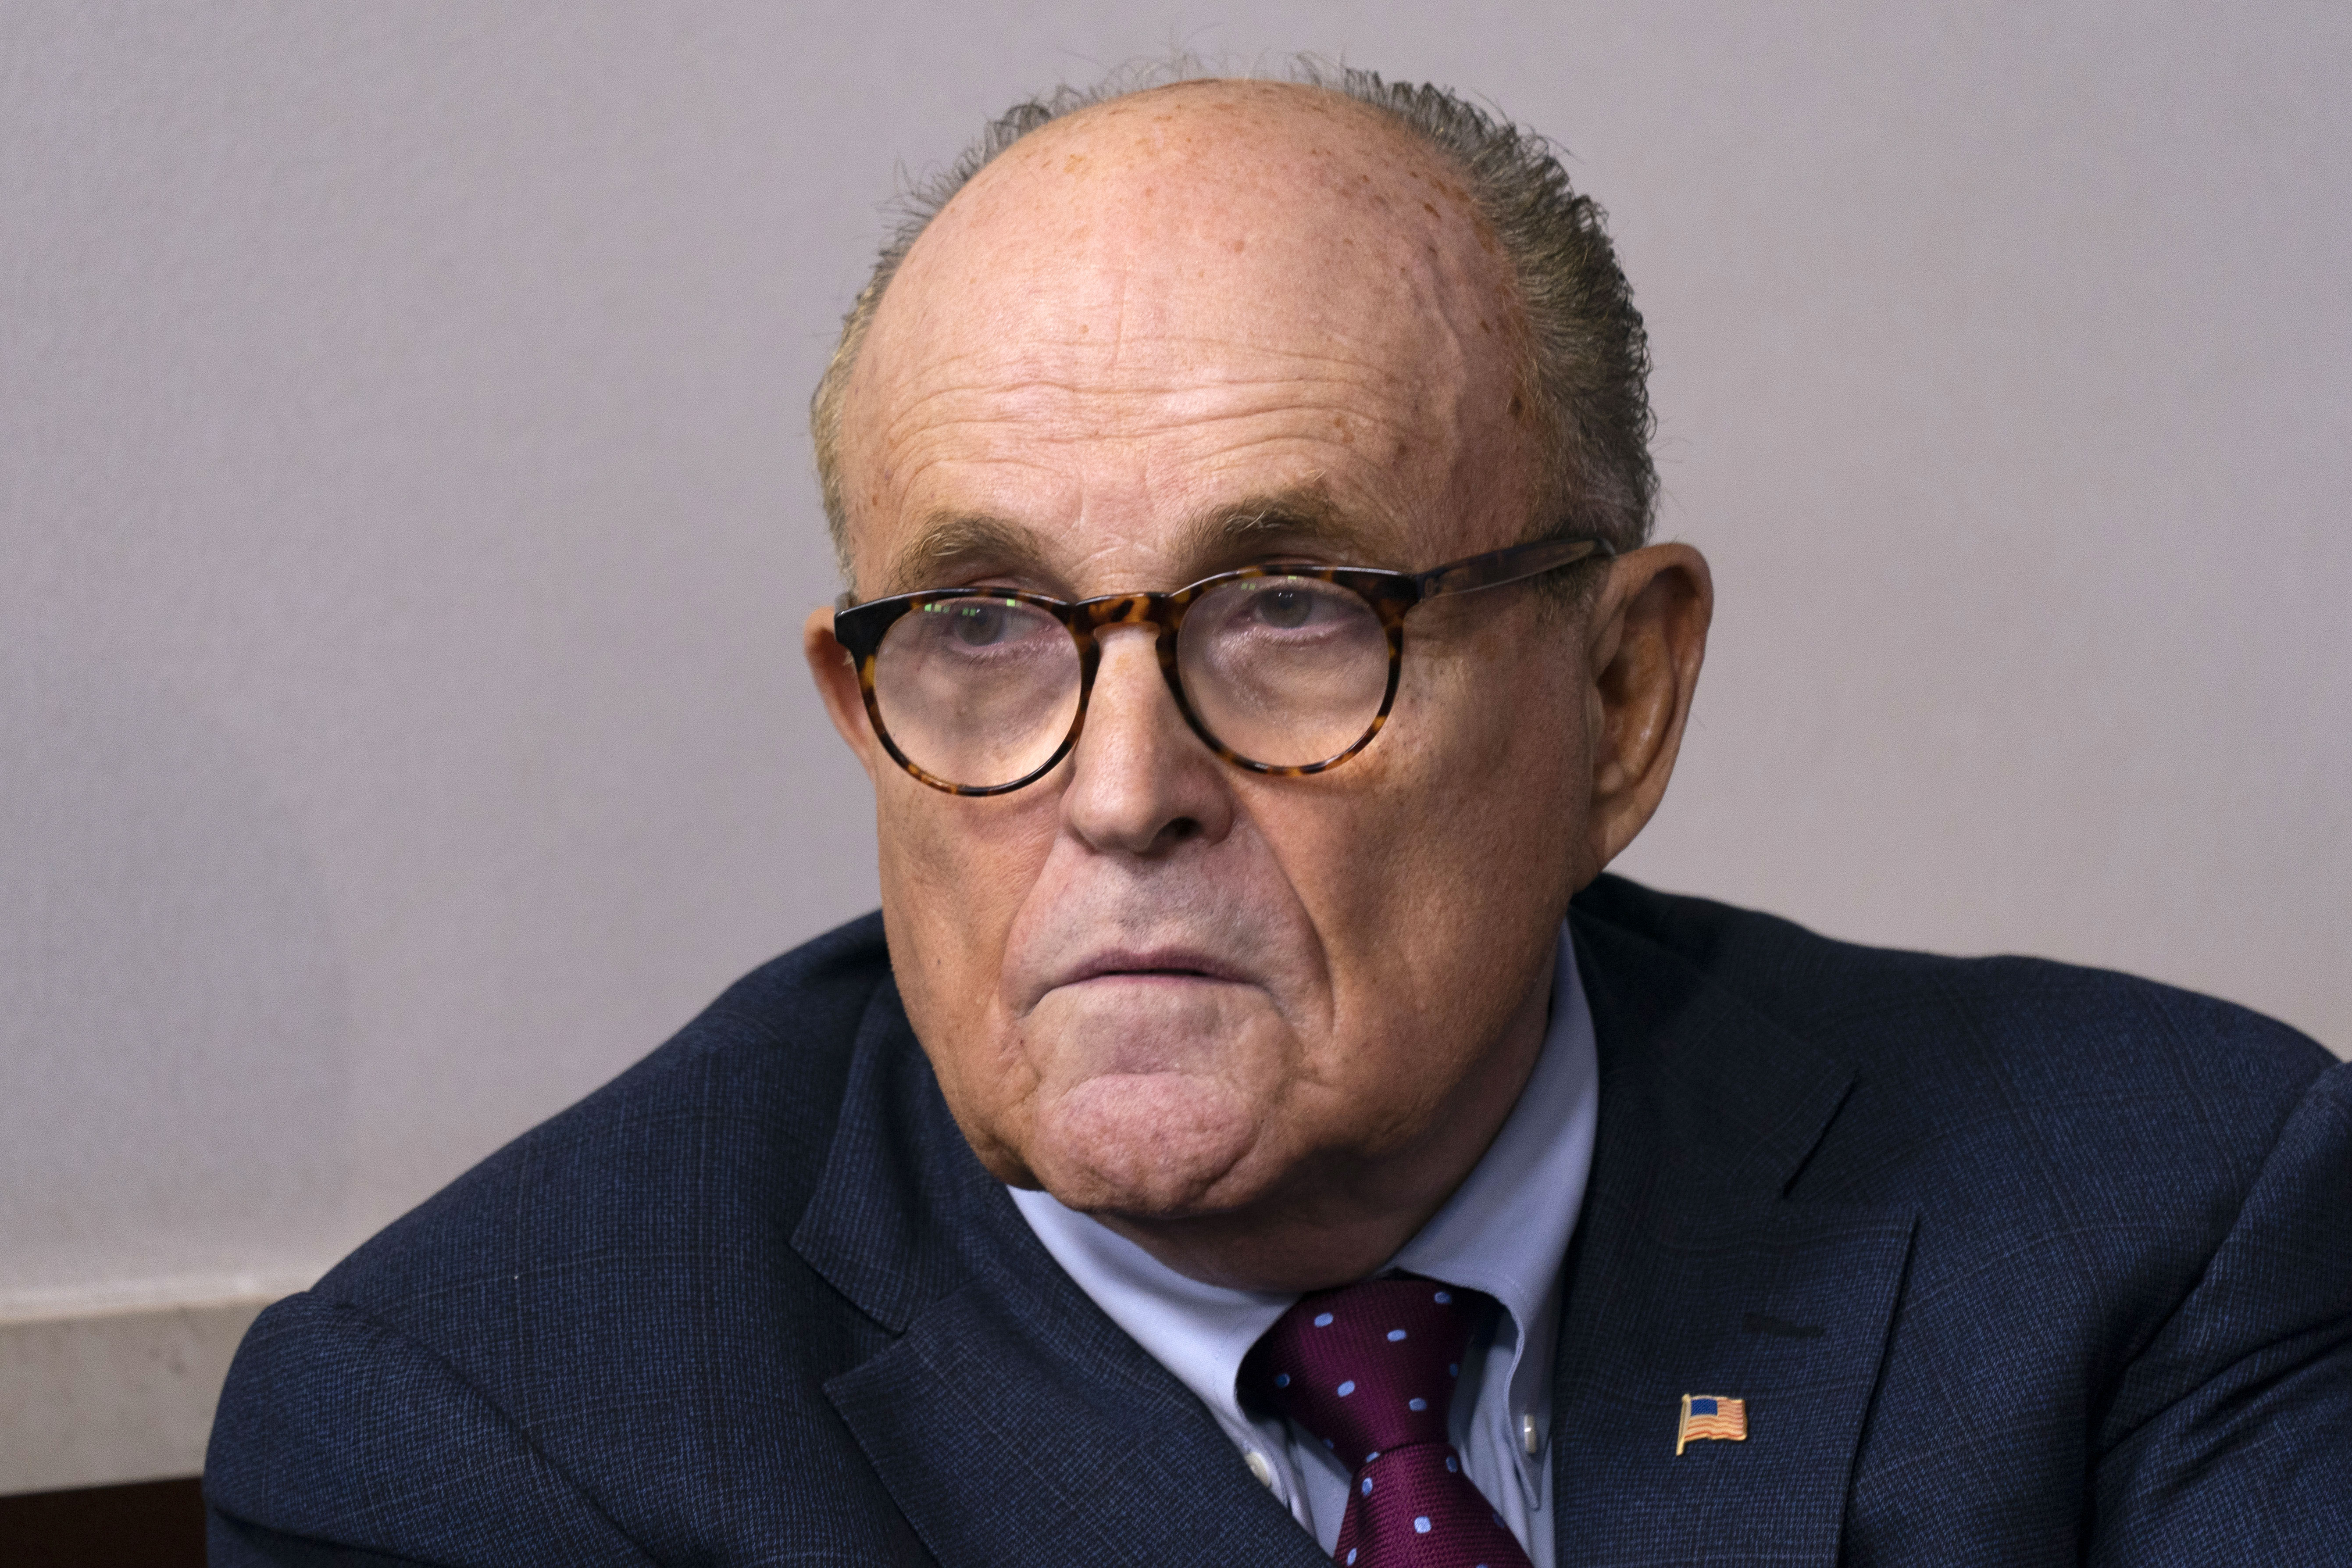 Rudy Giuliani listens during a news conference at the White House on September 27.